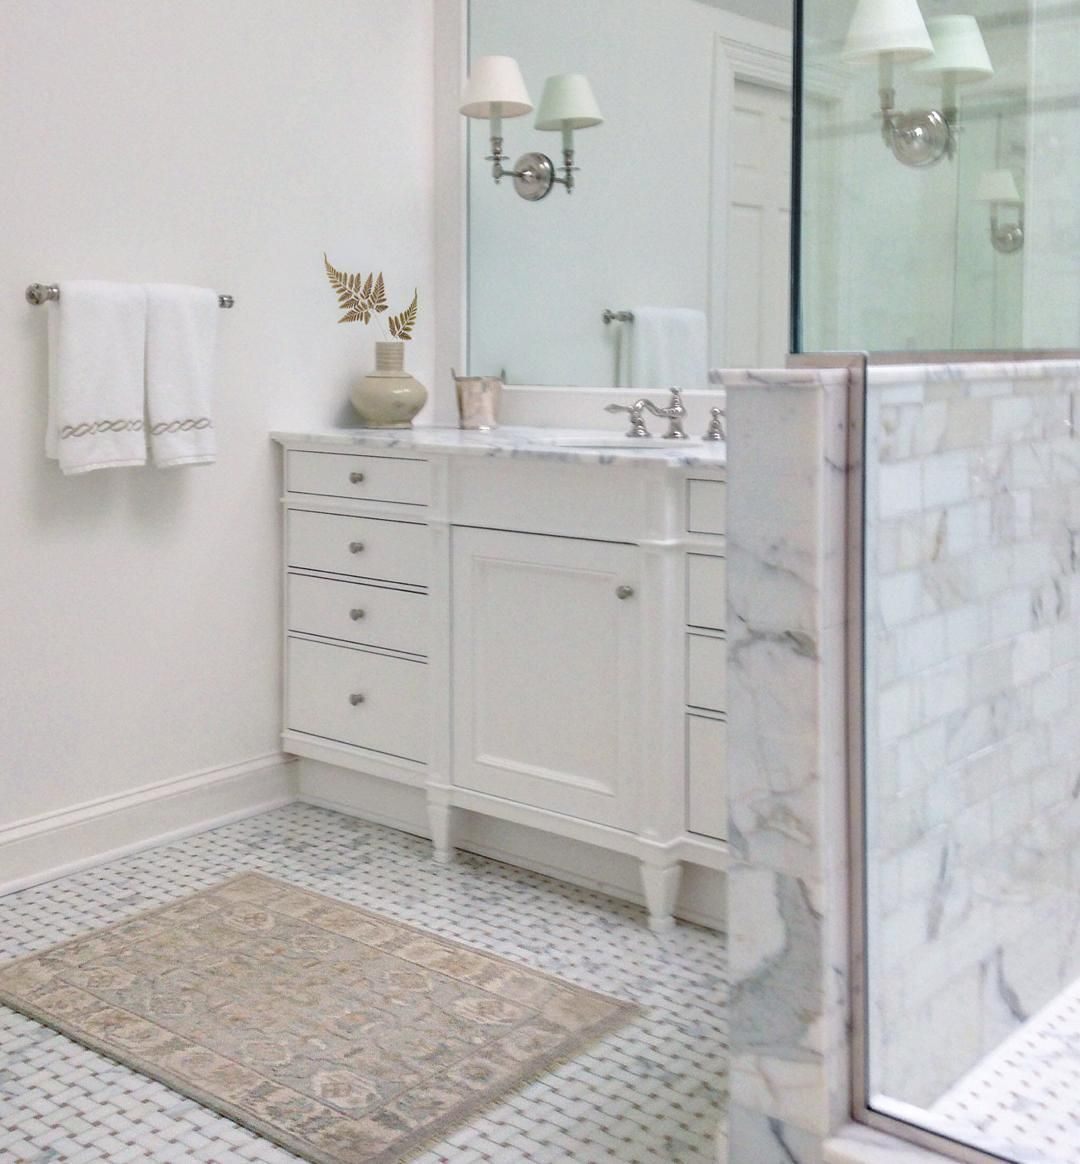 Love My Friend S Bathroom With The Calacatta Marble And I Am Obsessed With Her Little Oushak Area Rug As Mat Bathroom Oushak Calacatta By Loithai